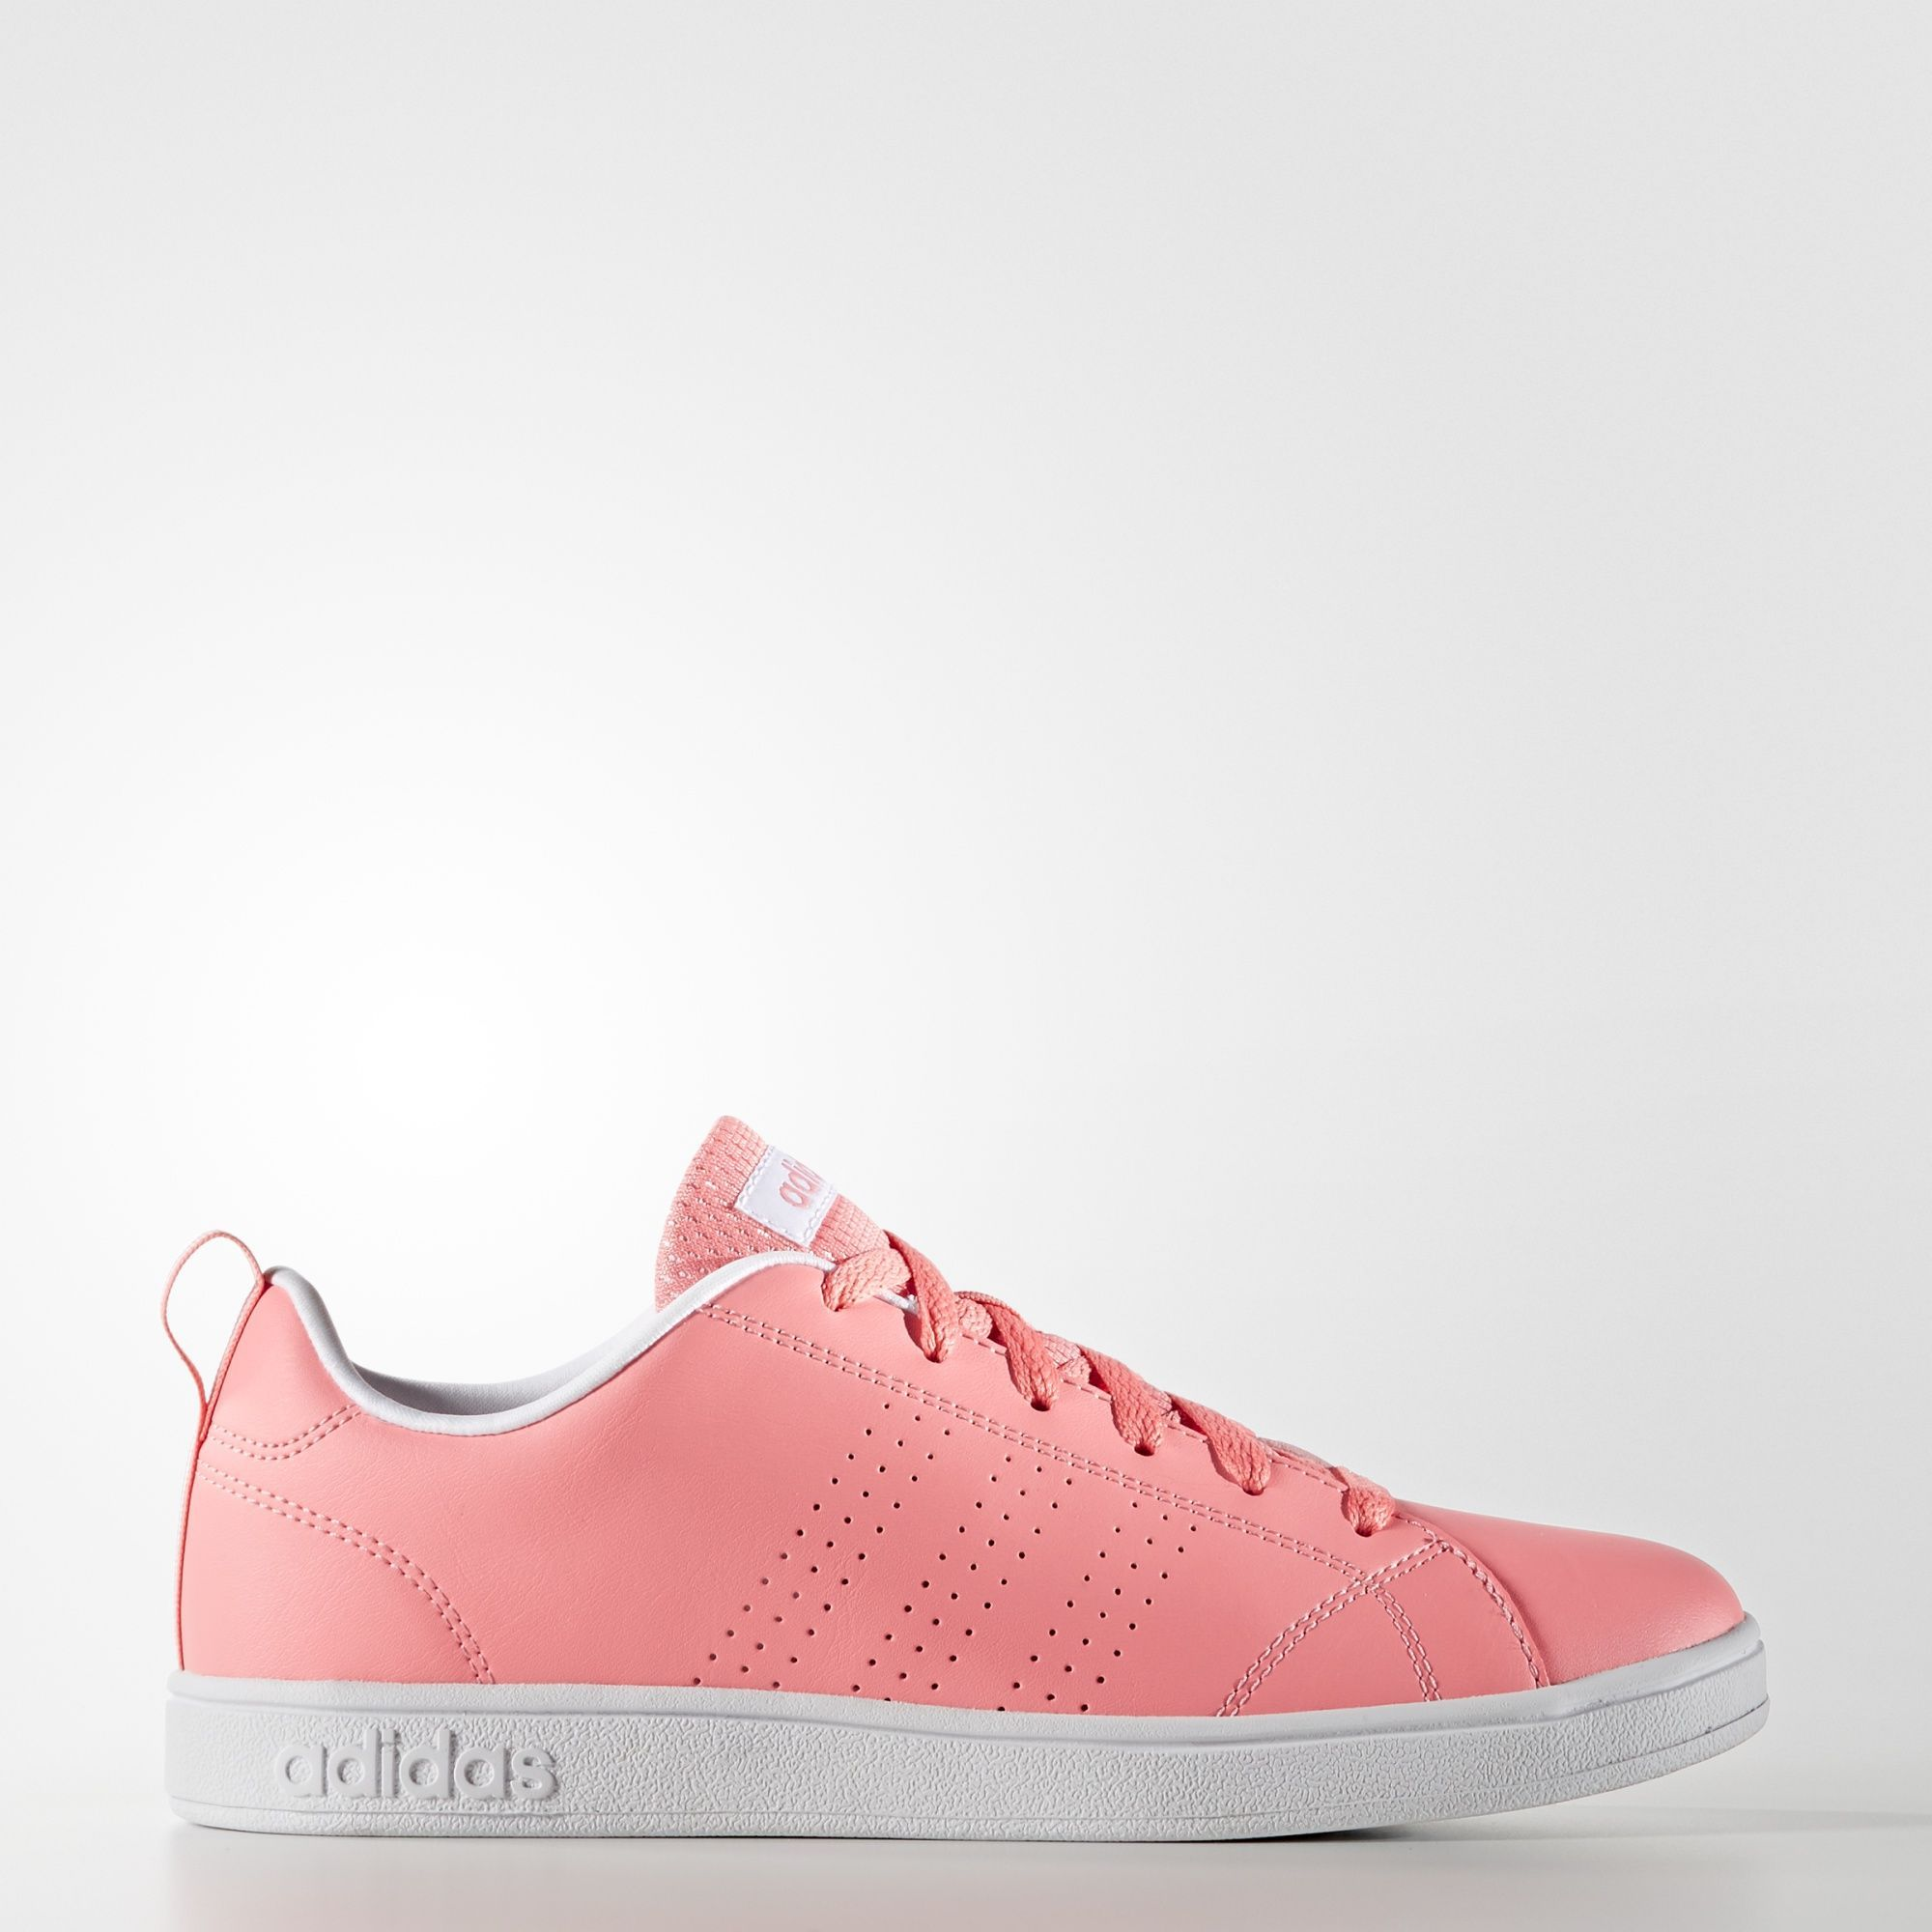 adidas cloudfoam advantage pink